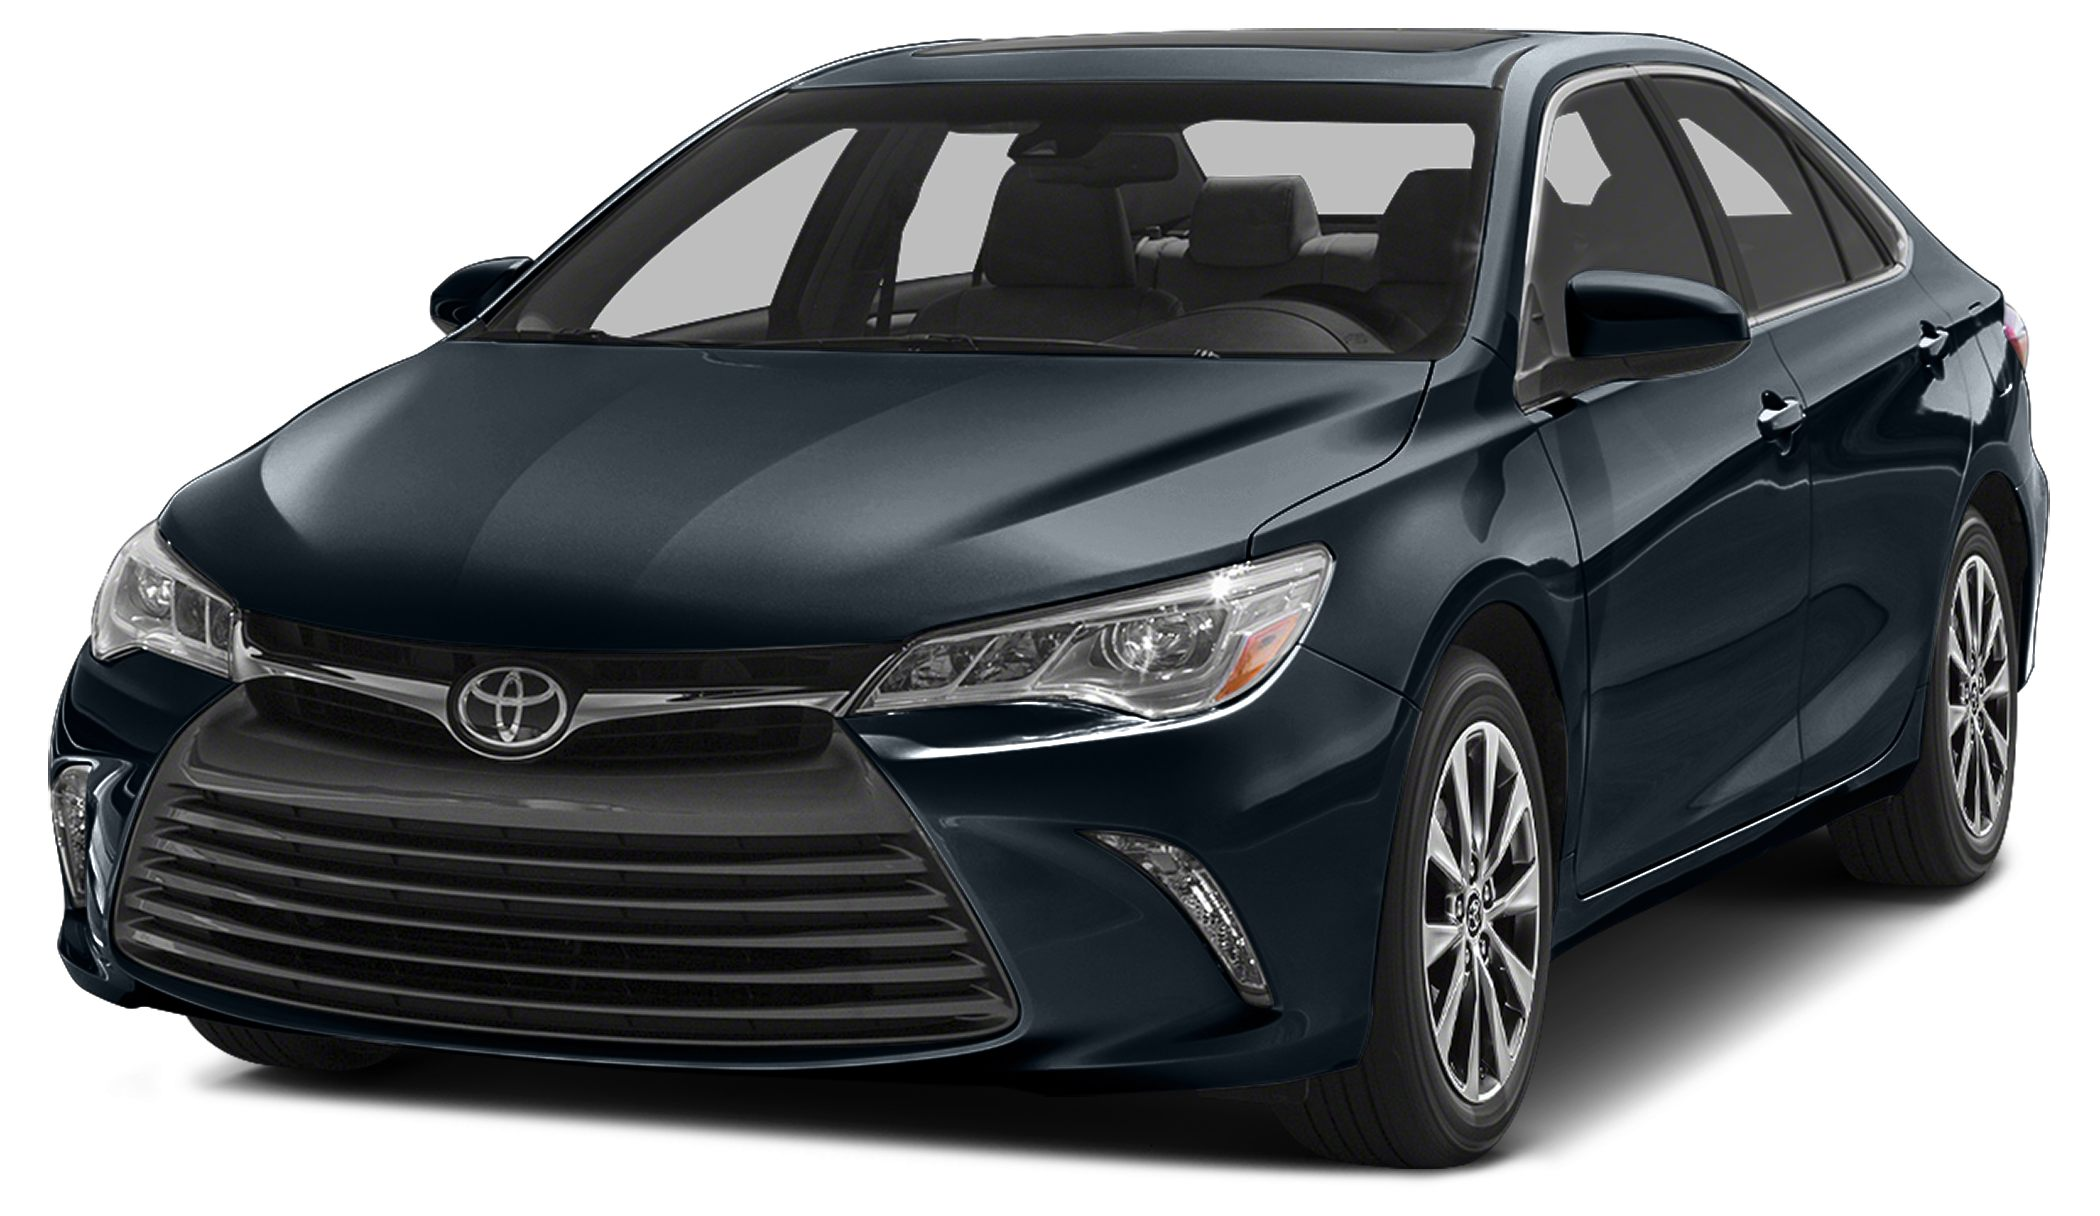 2015 Toyota Camry LE FUEL EFFICIENT 35 MPG Hwy25 MPG City PRICED TO MOVE 400 below Kelley Blue